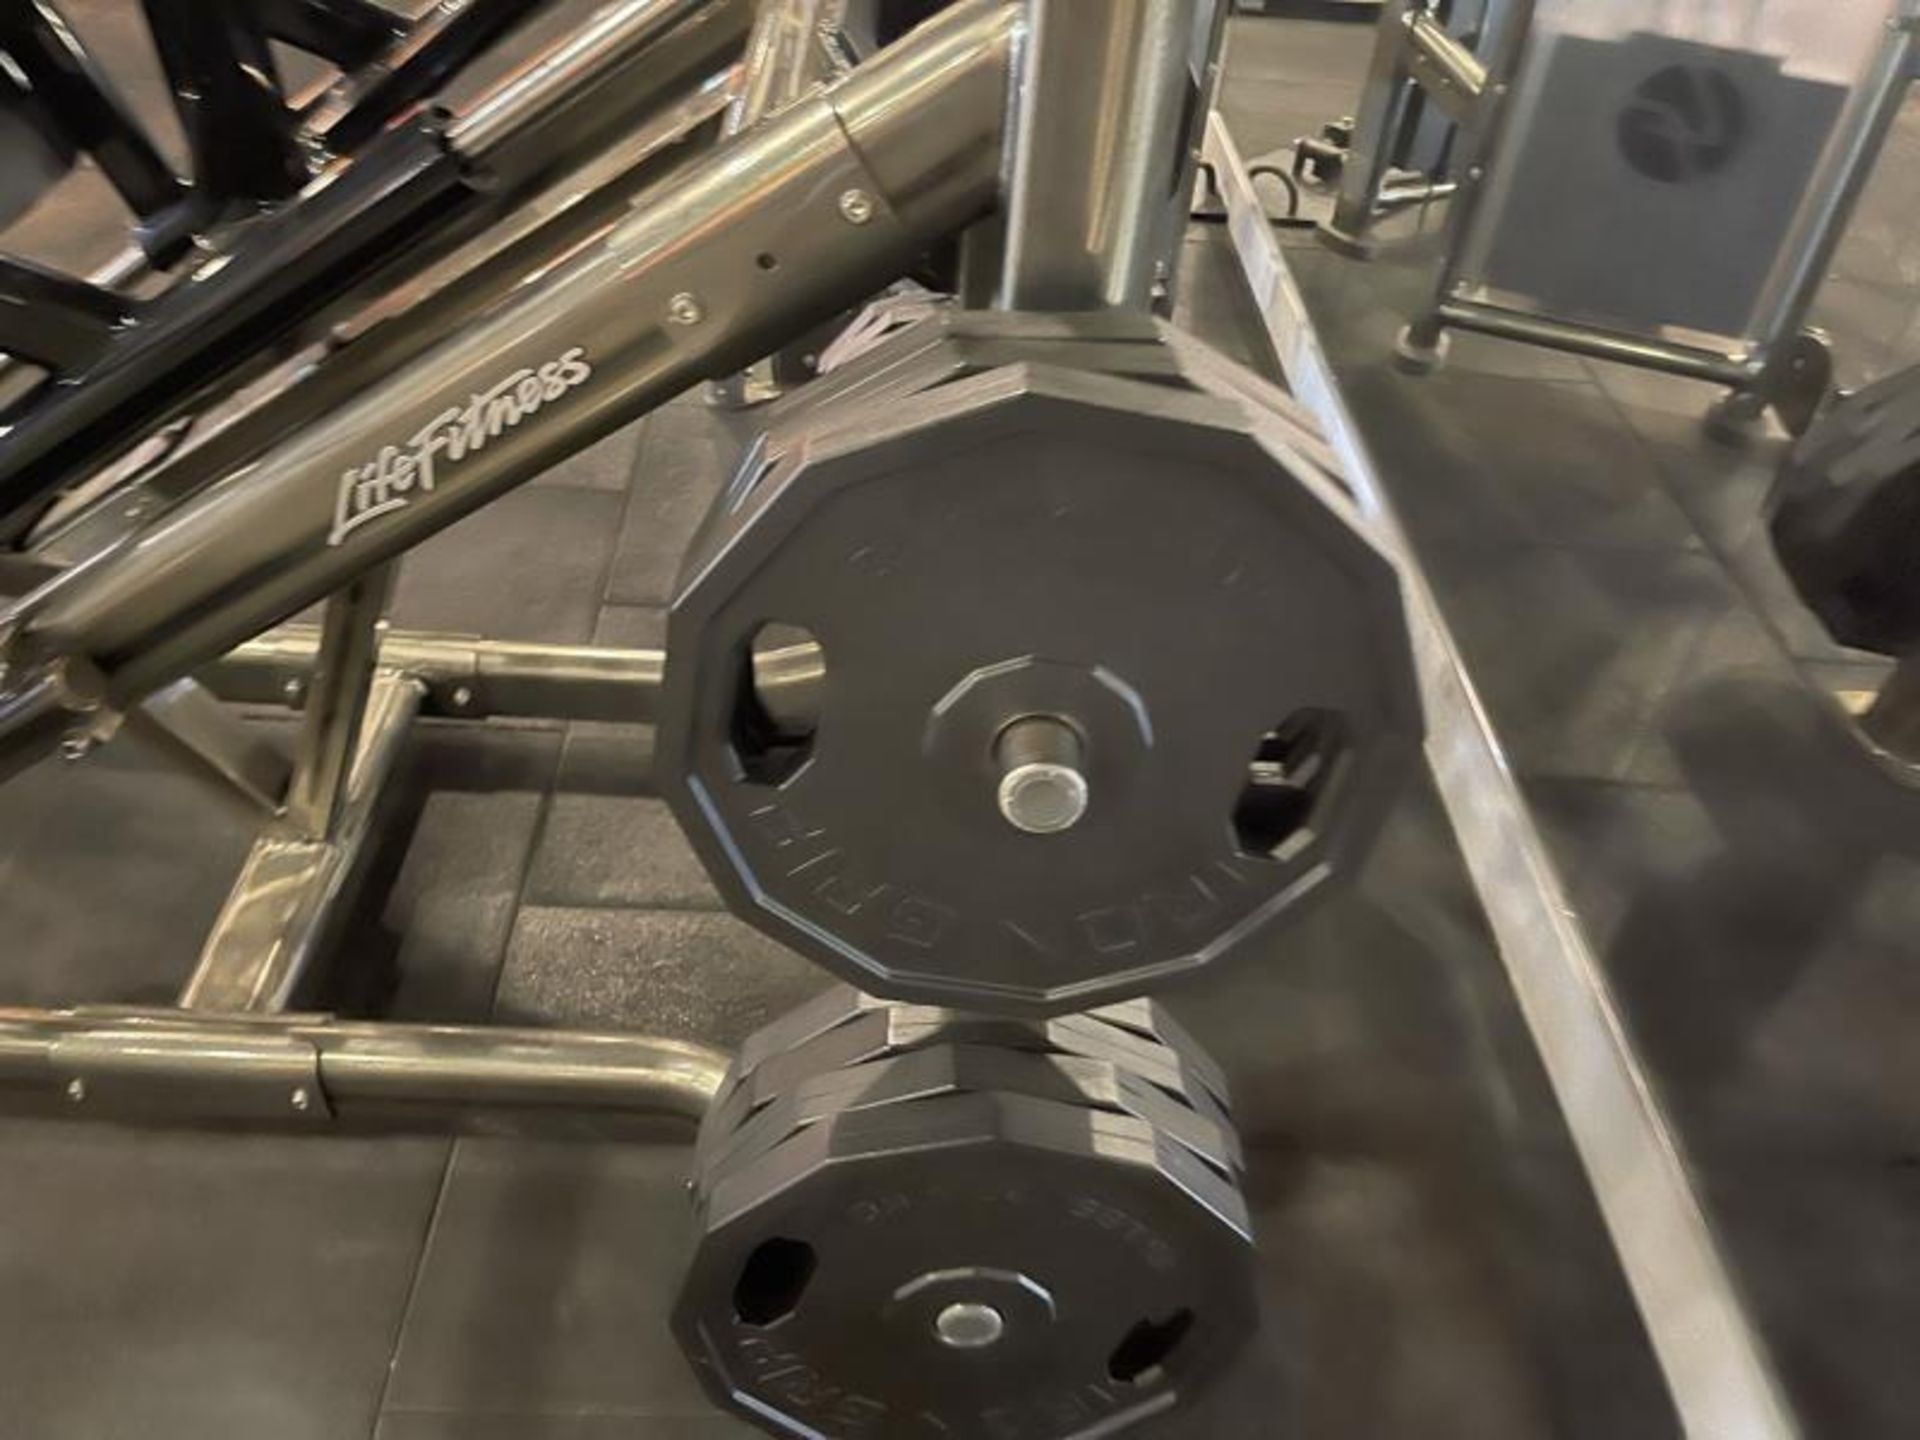 Life Fitness Linear Leg Press with Iron Grip Weighted Plates M: SPLLLP - Image 3 of 9